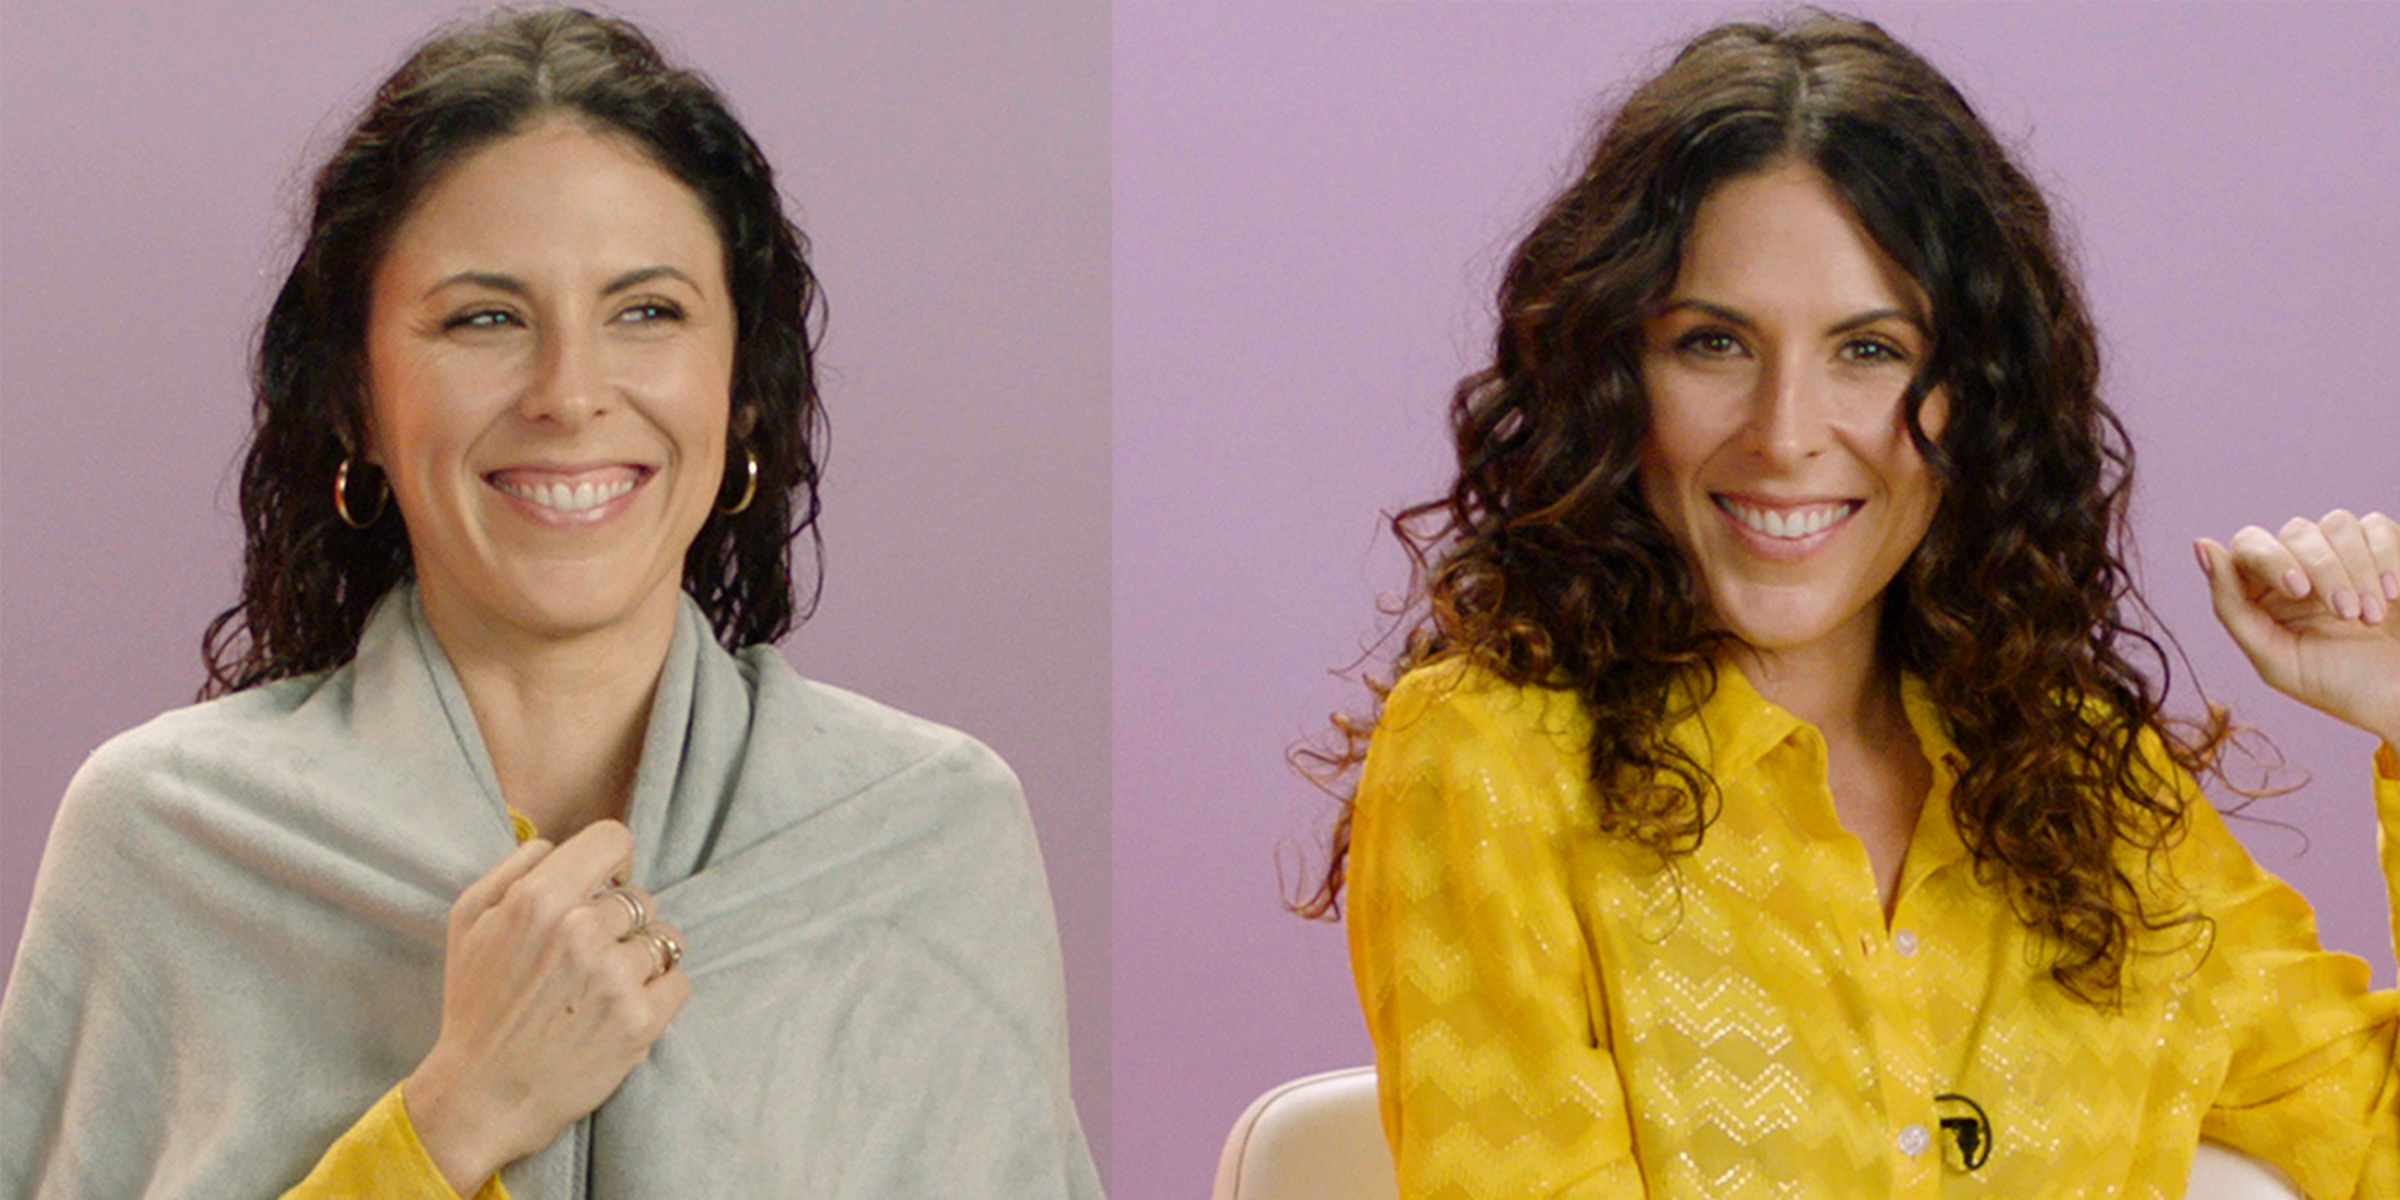 How To Style Curly Hair In 5 Easy Steps